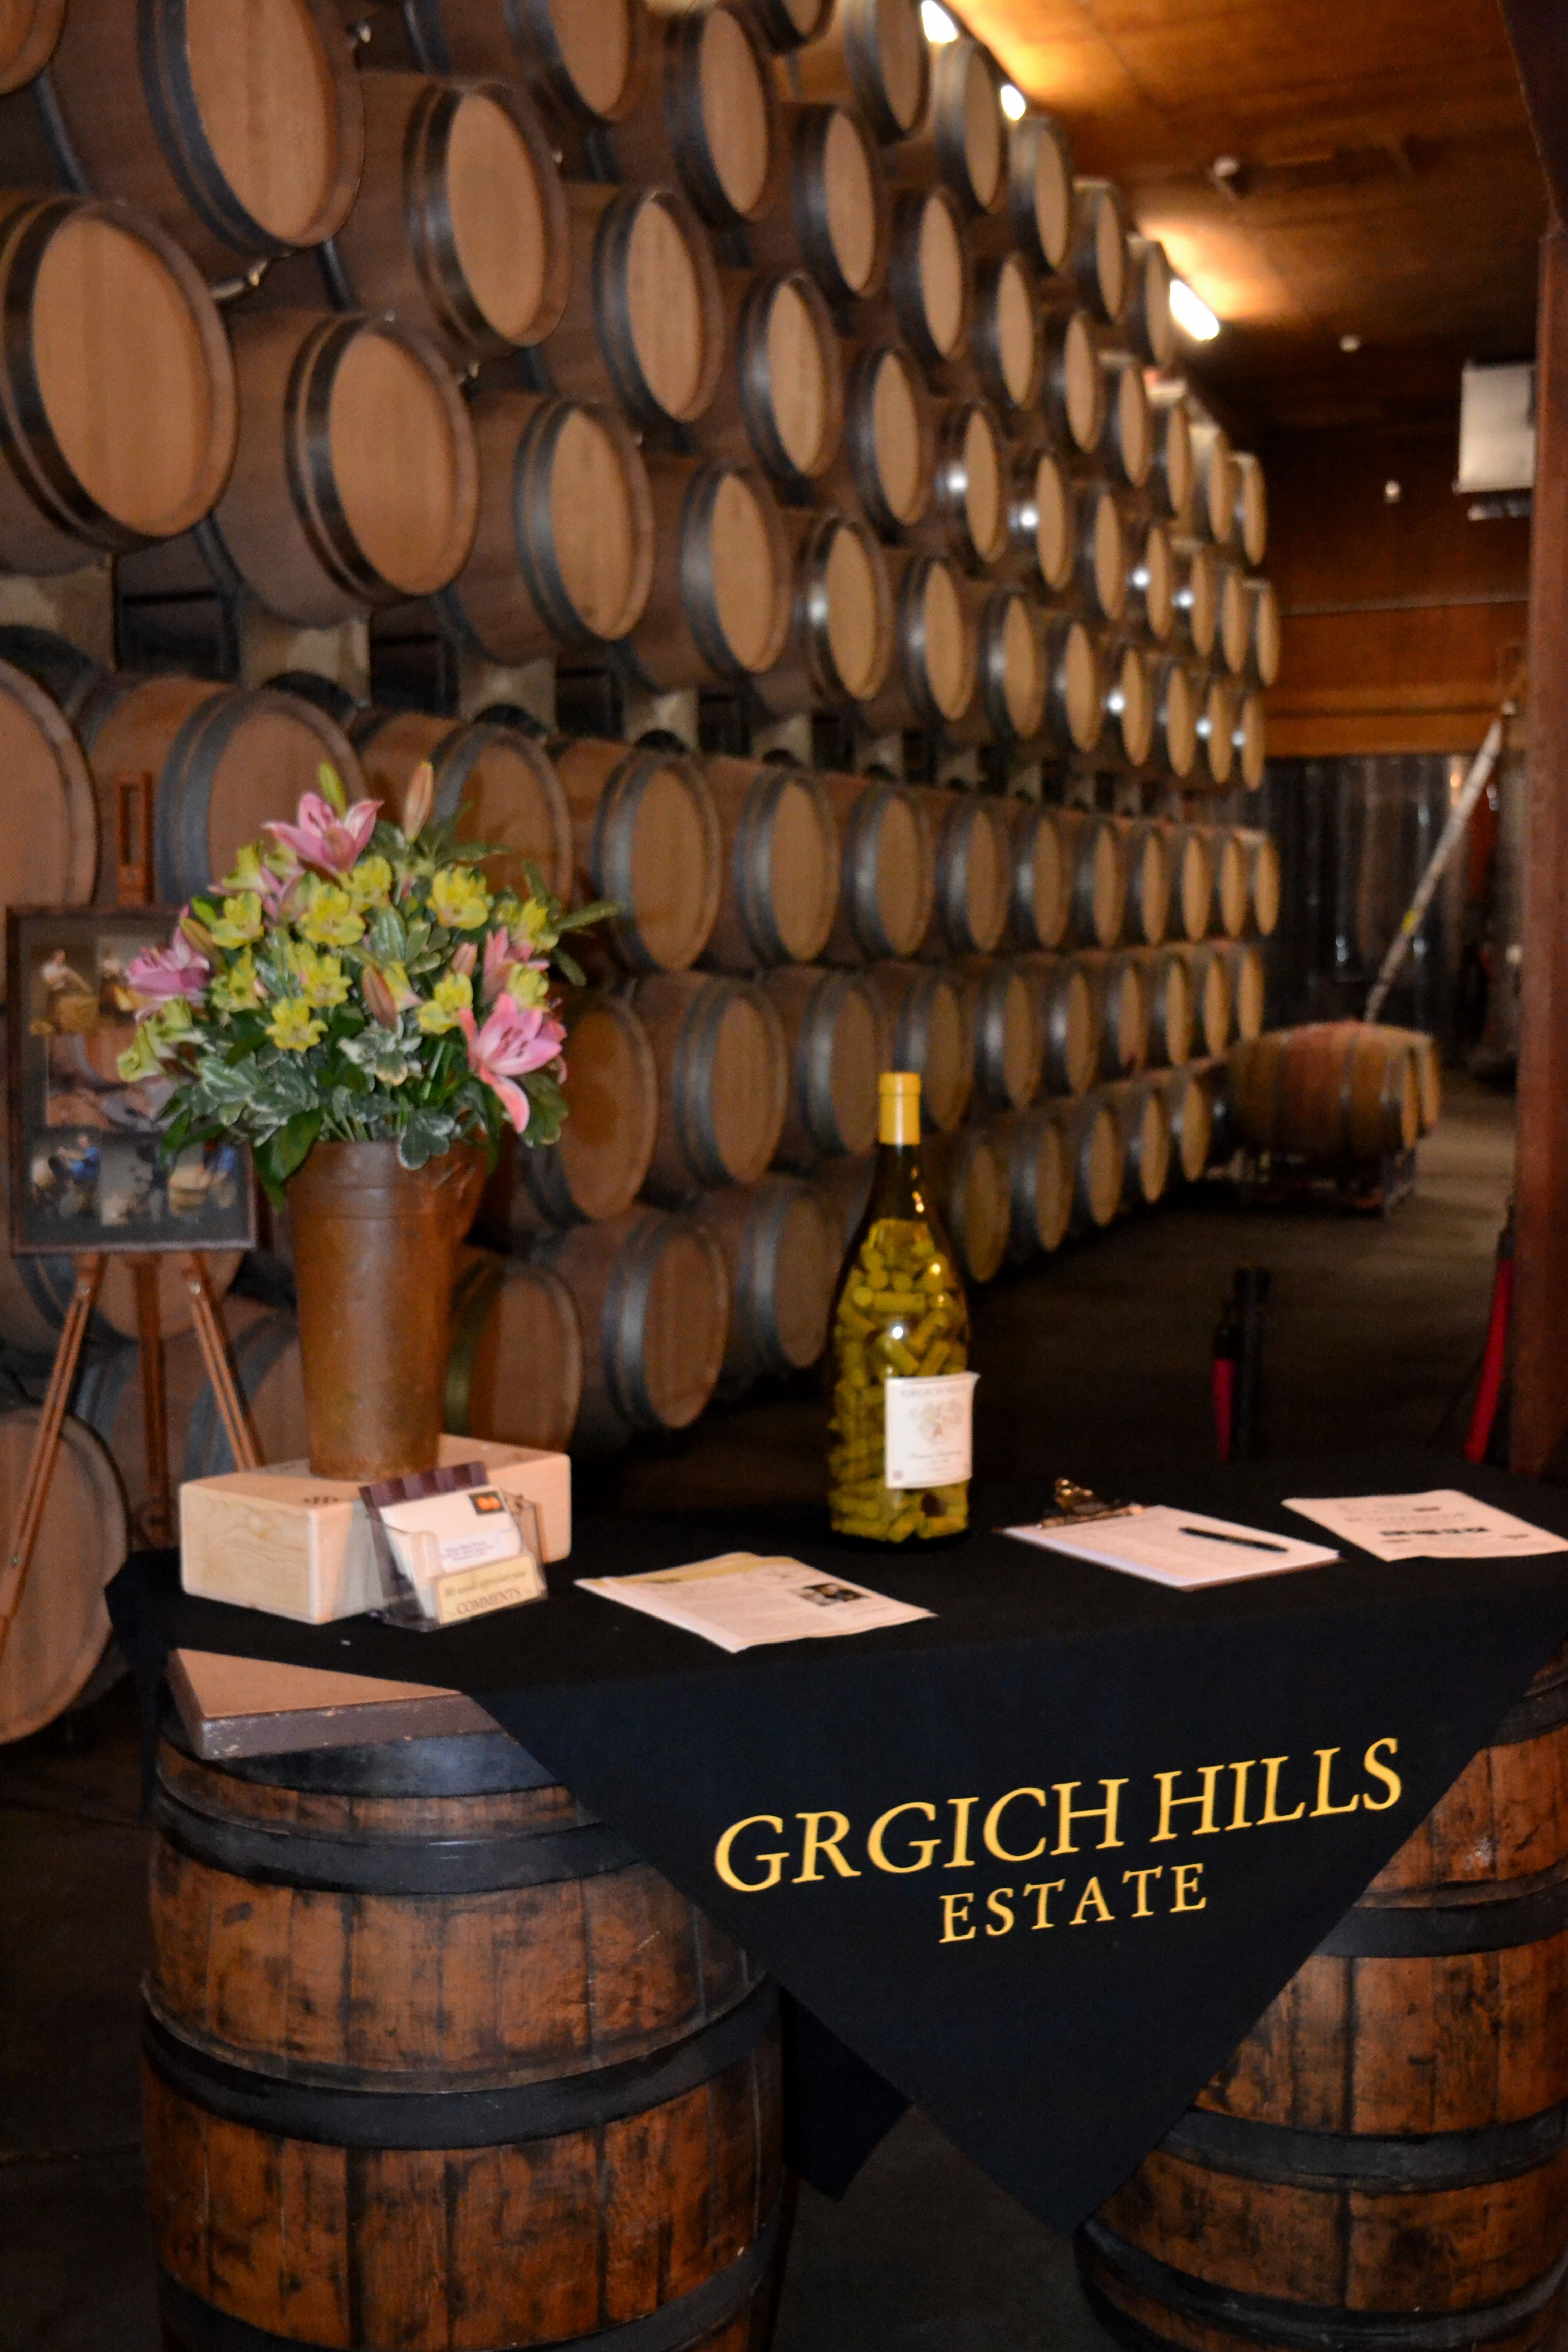 Grgich Hills Winery I Want To Go Here Best Wine Ever